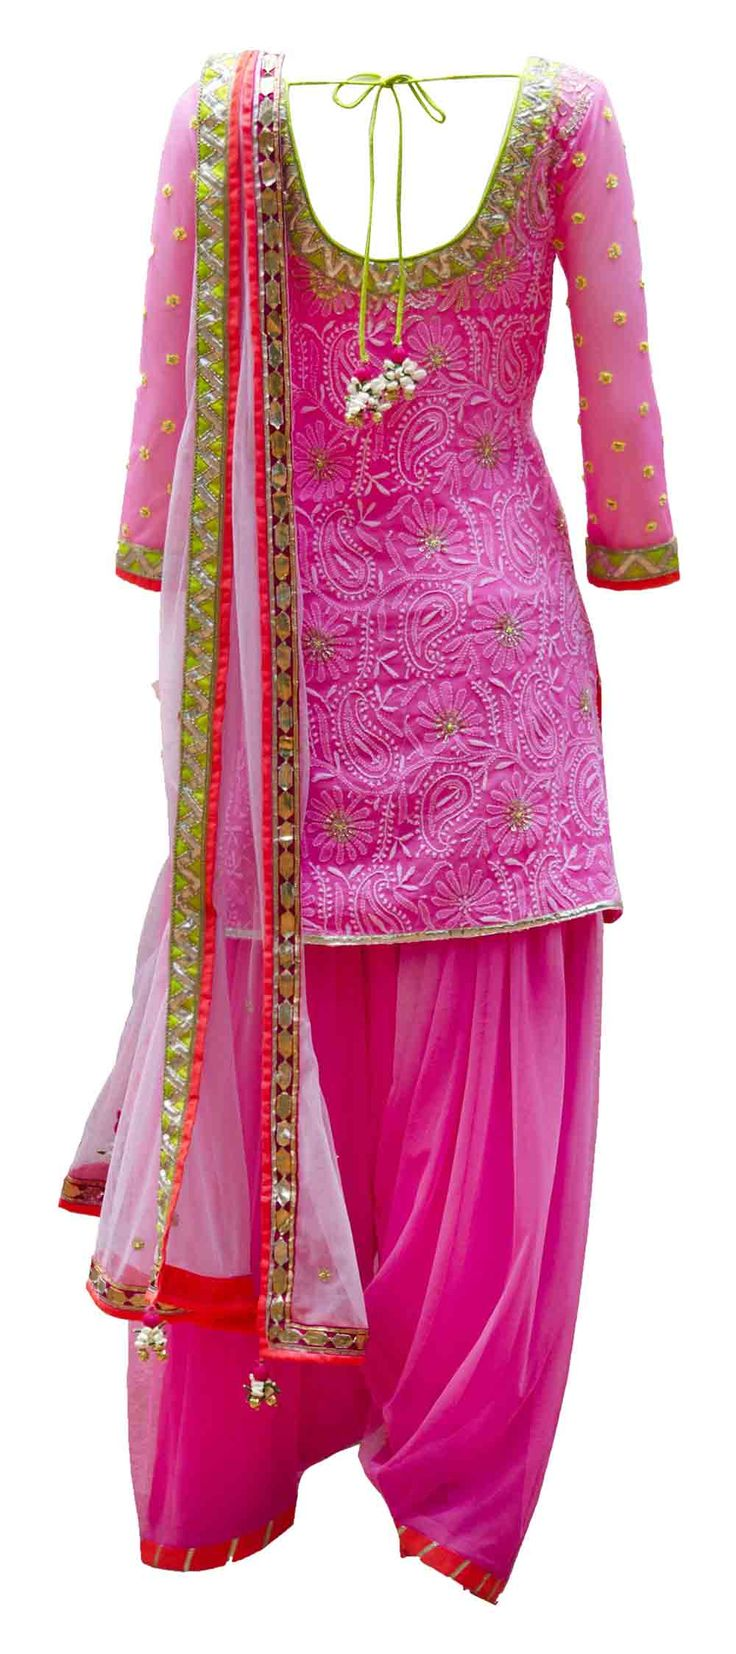 And patialas are back with a bang! :D Here's a cute one in pink+gold border. #love